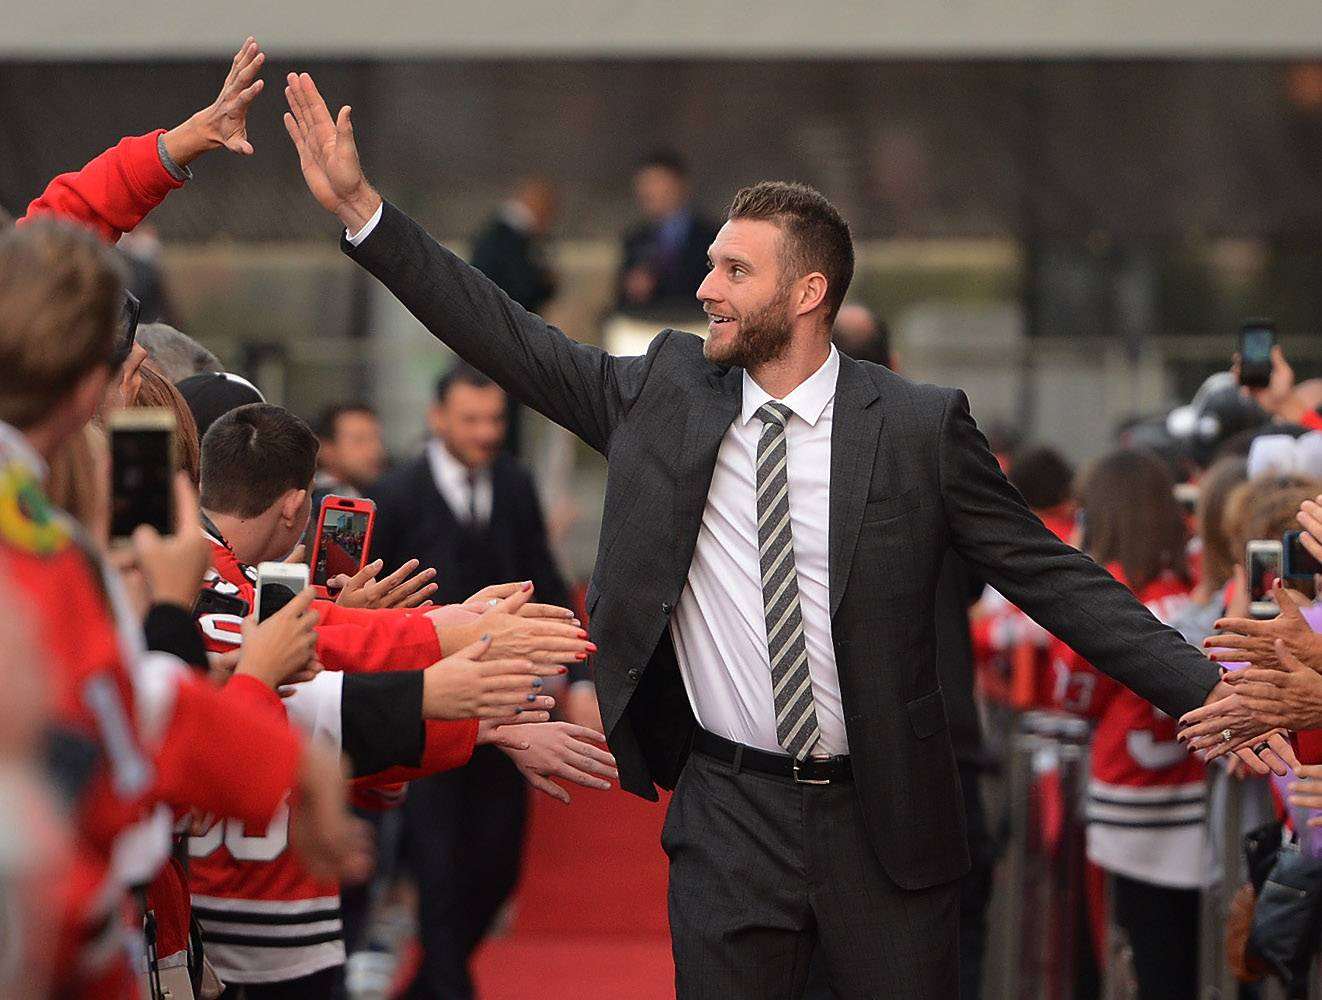 Bob Chwedyk/bchwedyk@dailyherald.comNewly acquired Chicago Blackhawks defenseman Cody Franson high-fives during the red carpet ceremony before the Blackhawks home opener against the Penguins.